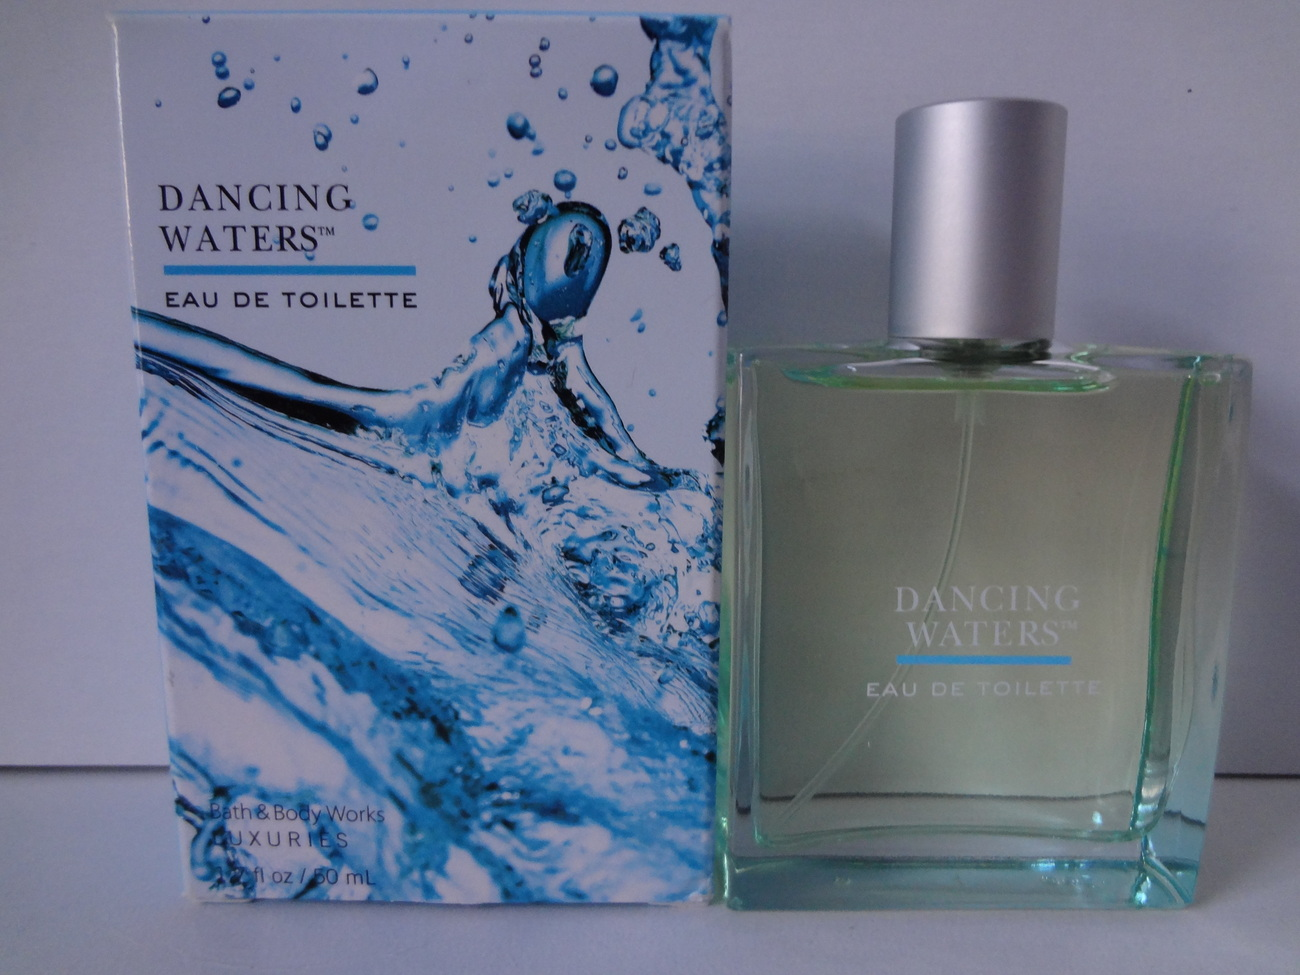 Bath & Body Works Luxuries Dancing Waters Eau de Toilette 1.7 fl oz / 50 ml